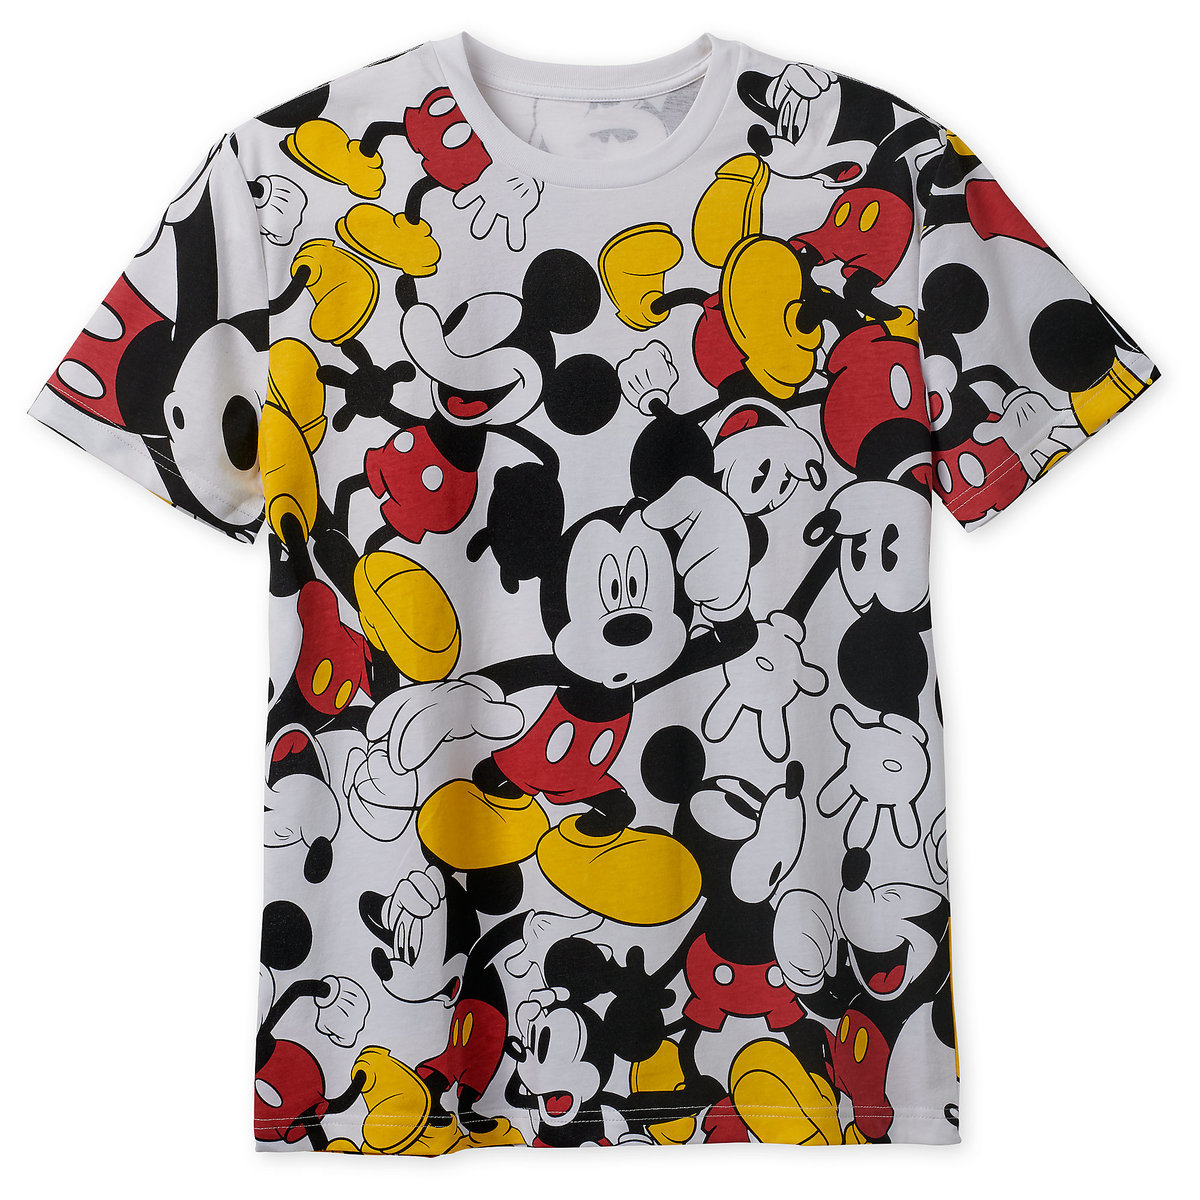 e14ac318 Product Image of Mickey Mouse Allover T-Shirt for Men # 1